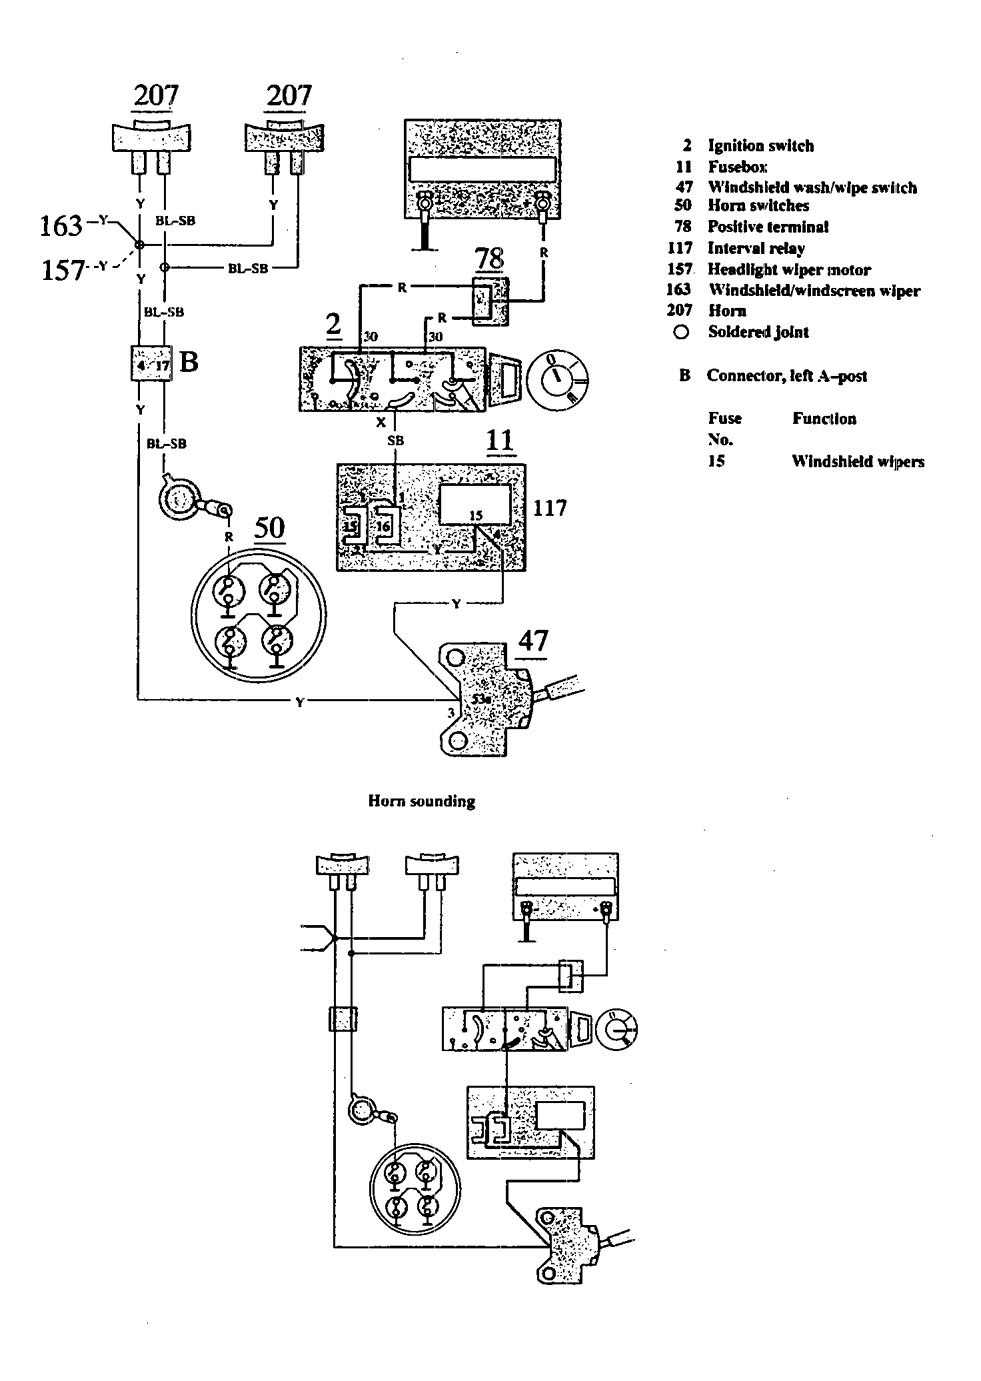 volvo 940 1991 wiring diagrams horn carknowledge rh carknowledge info 1992 Volvo 940 Radio Wiring 1992 Volvo 940 Radio Wiring